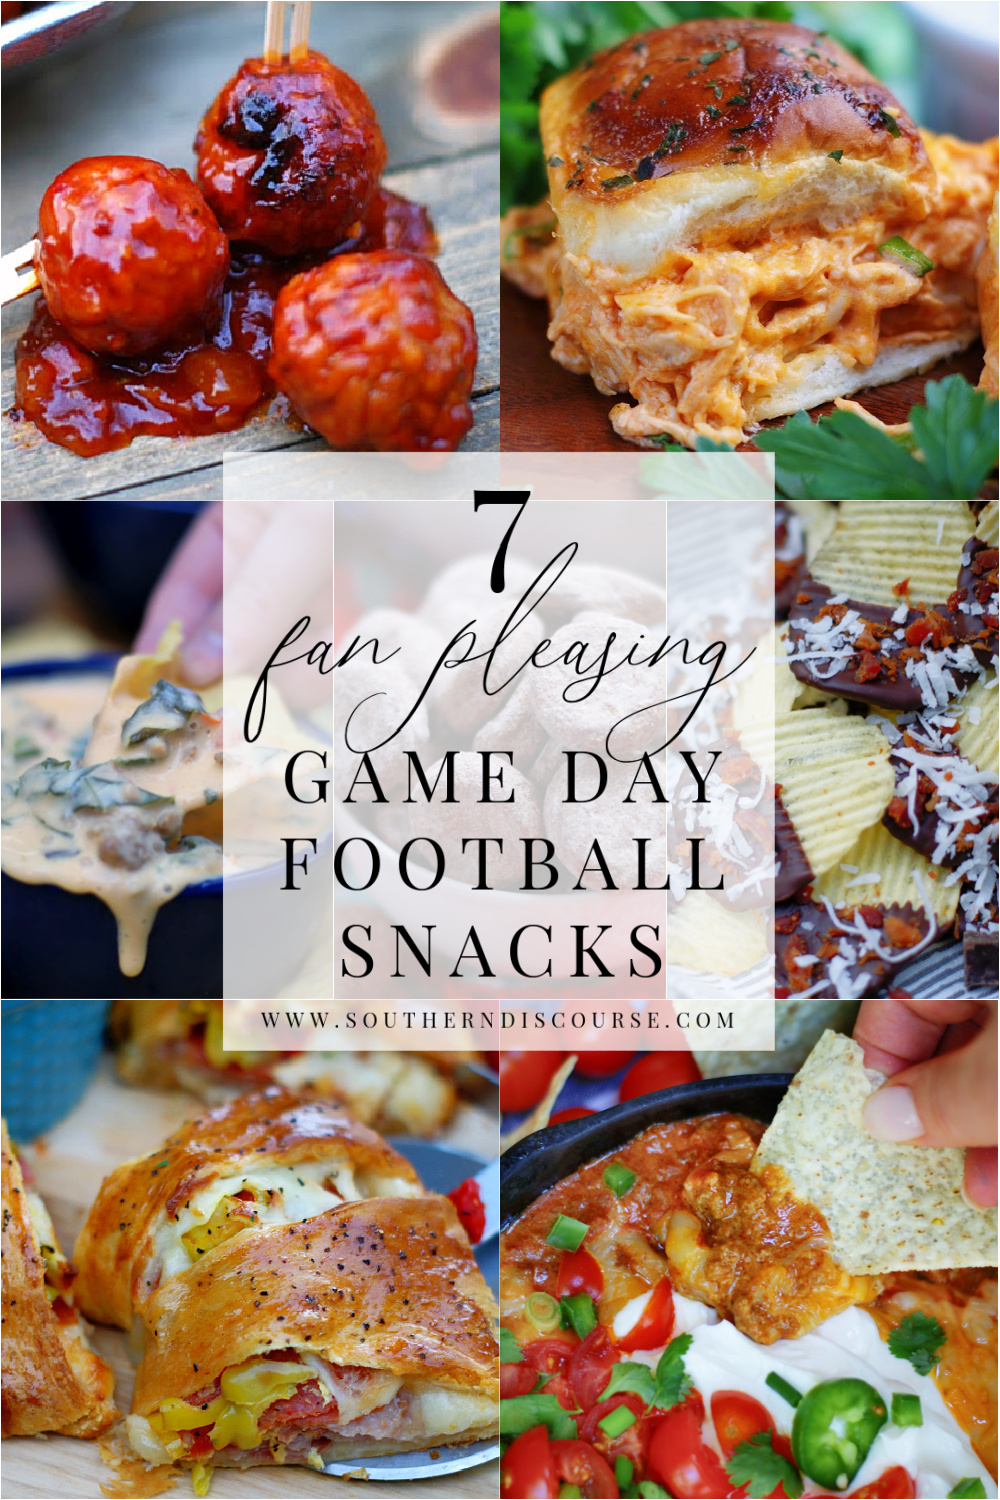 7 hearty football snacks sure to please all your fans on game day!  From buffalo sliders and Spicy Italians to hot dips and sweet treats, this collection have everything you need to enjoy the big game!